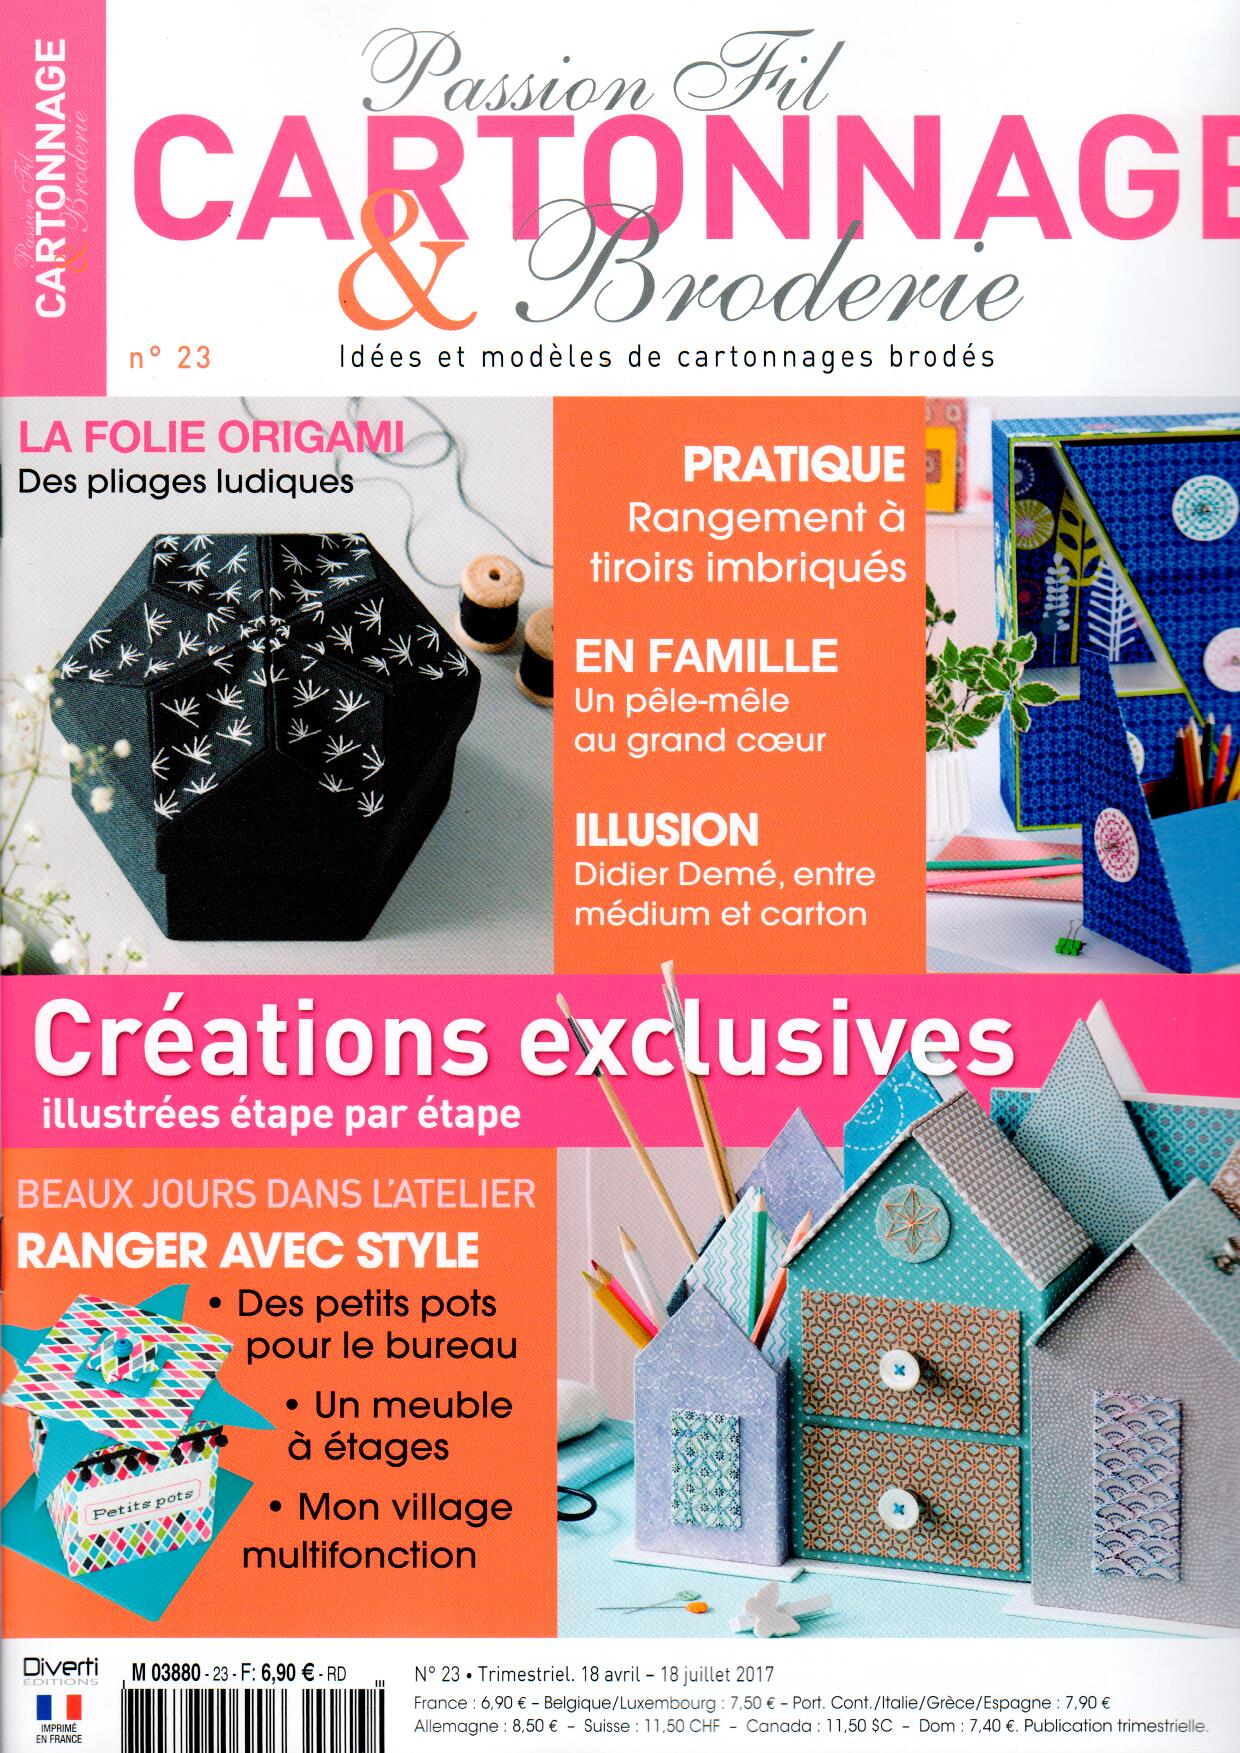 Passion fil cartonnage broderie N° 23 Avril 2017